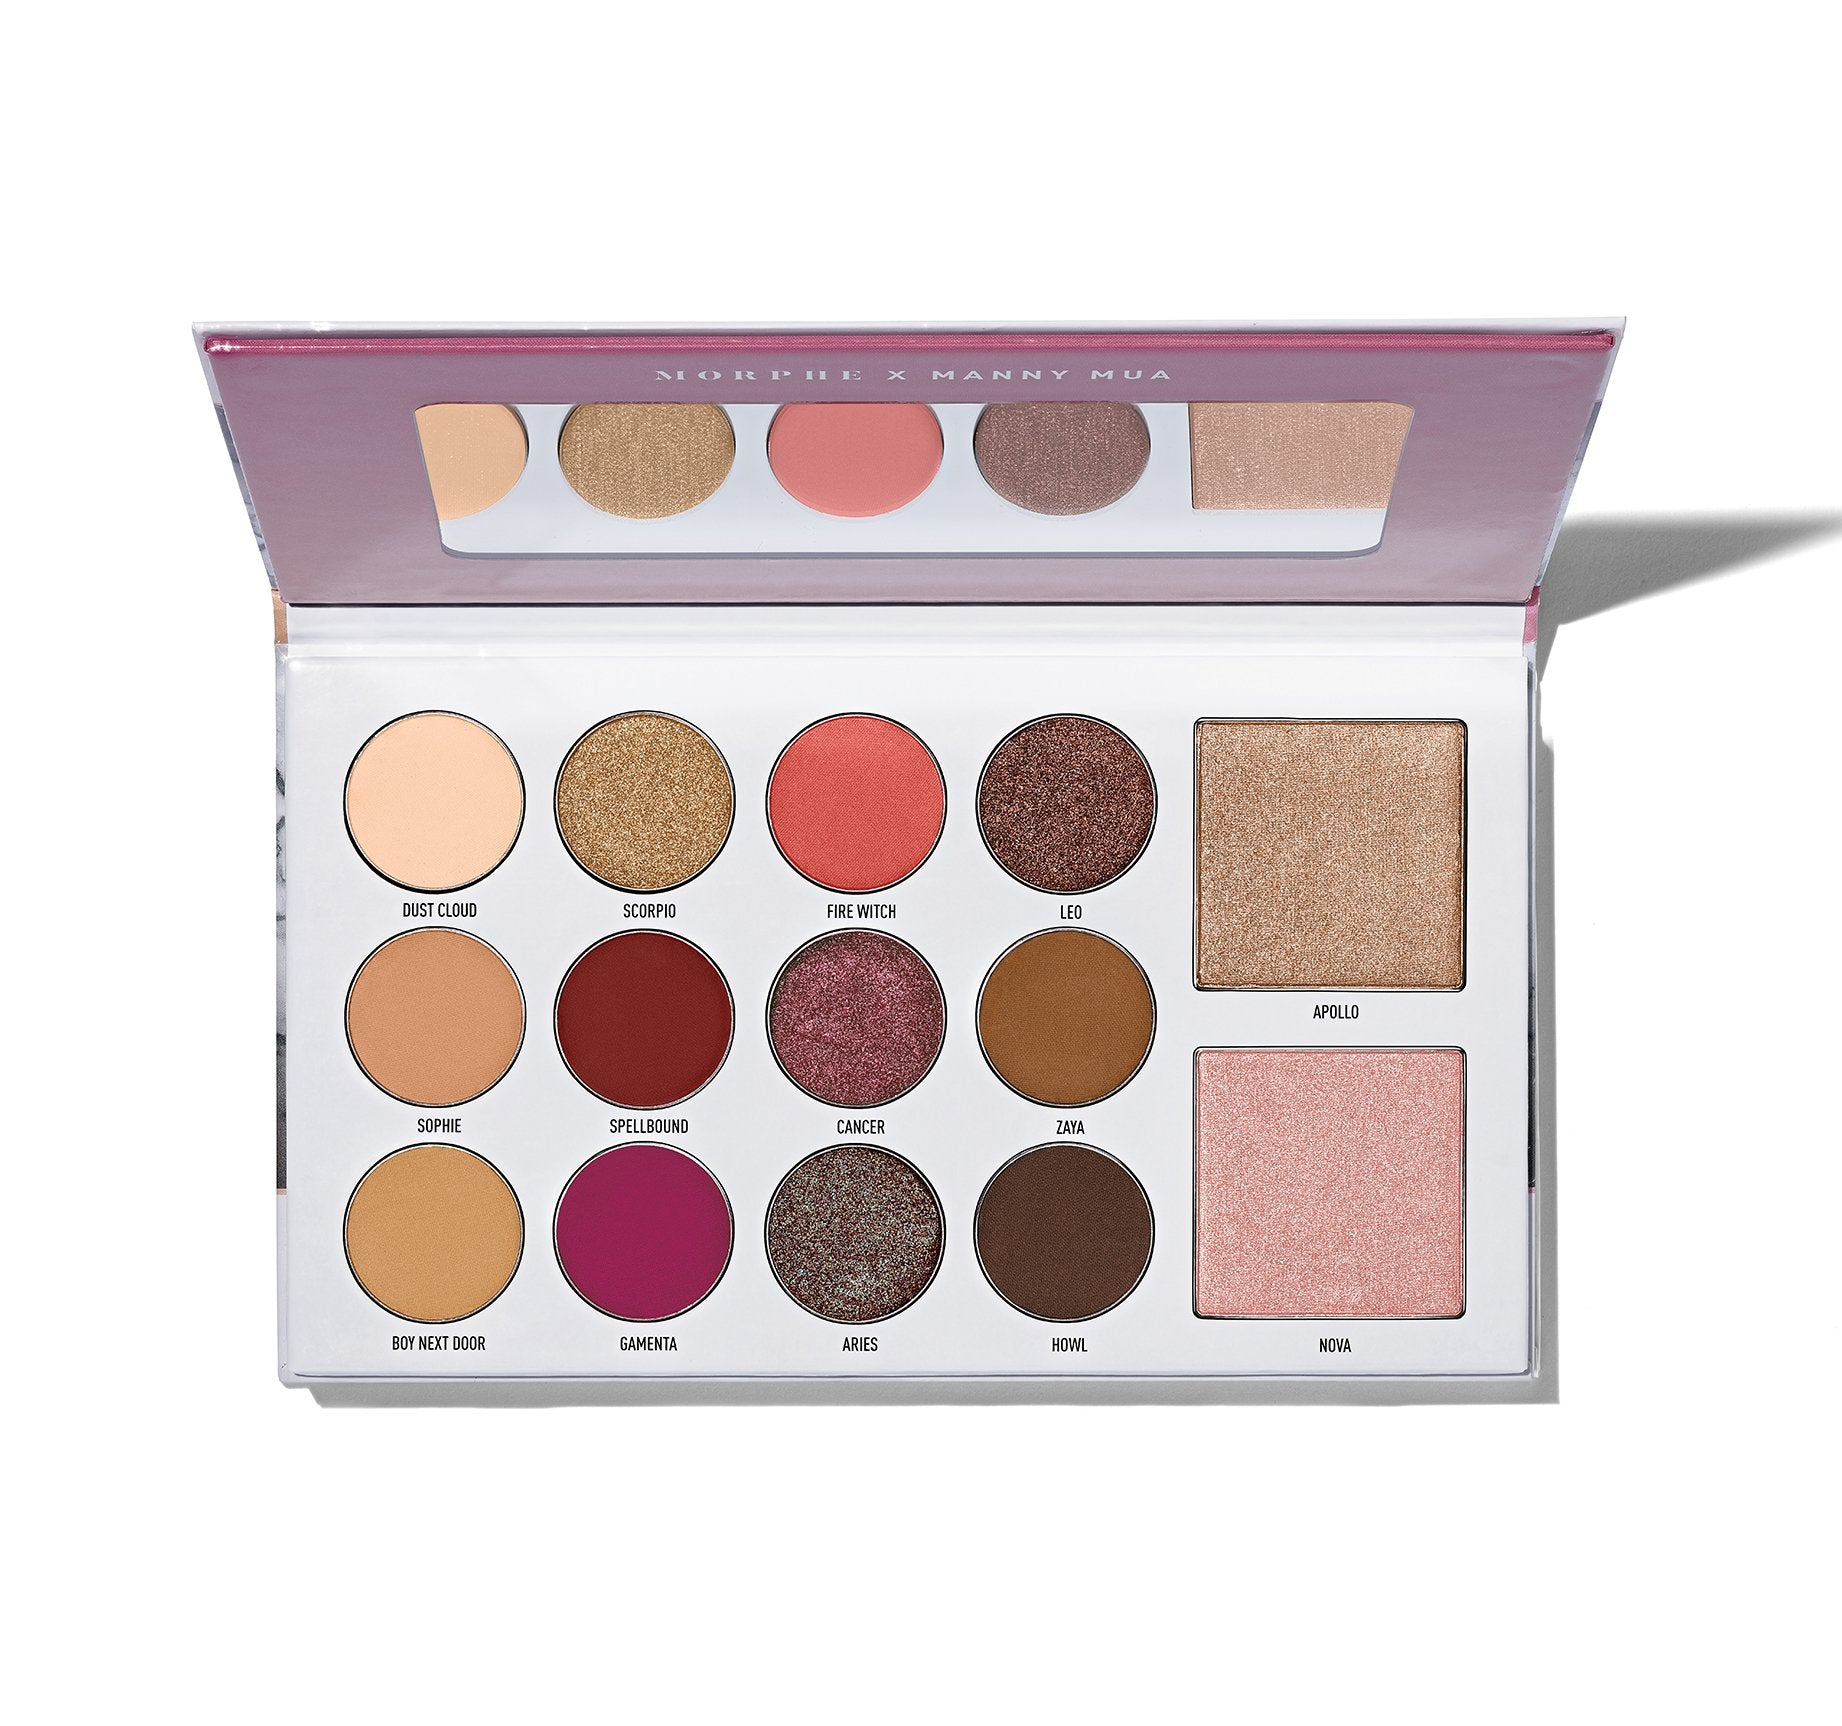 Morphe X Manny Mua Glam Palette See more ideas about makeup, eyeshadow and makeup palette. morphe x manny mua glam palette